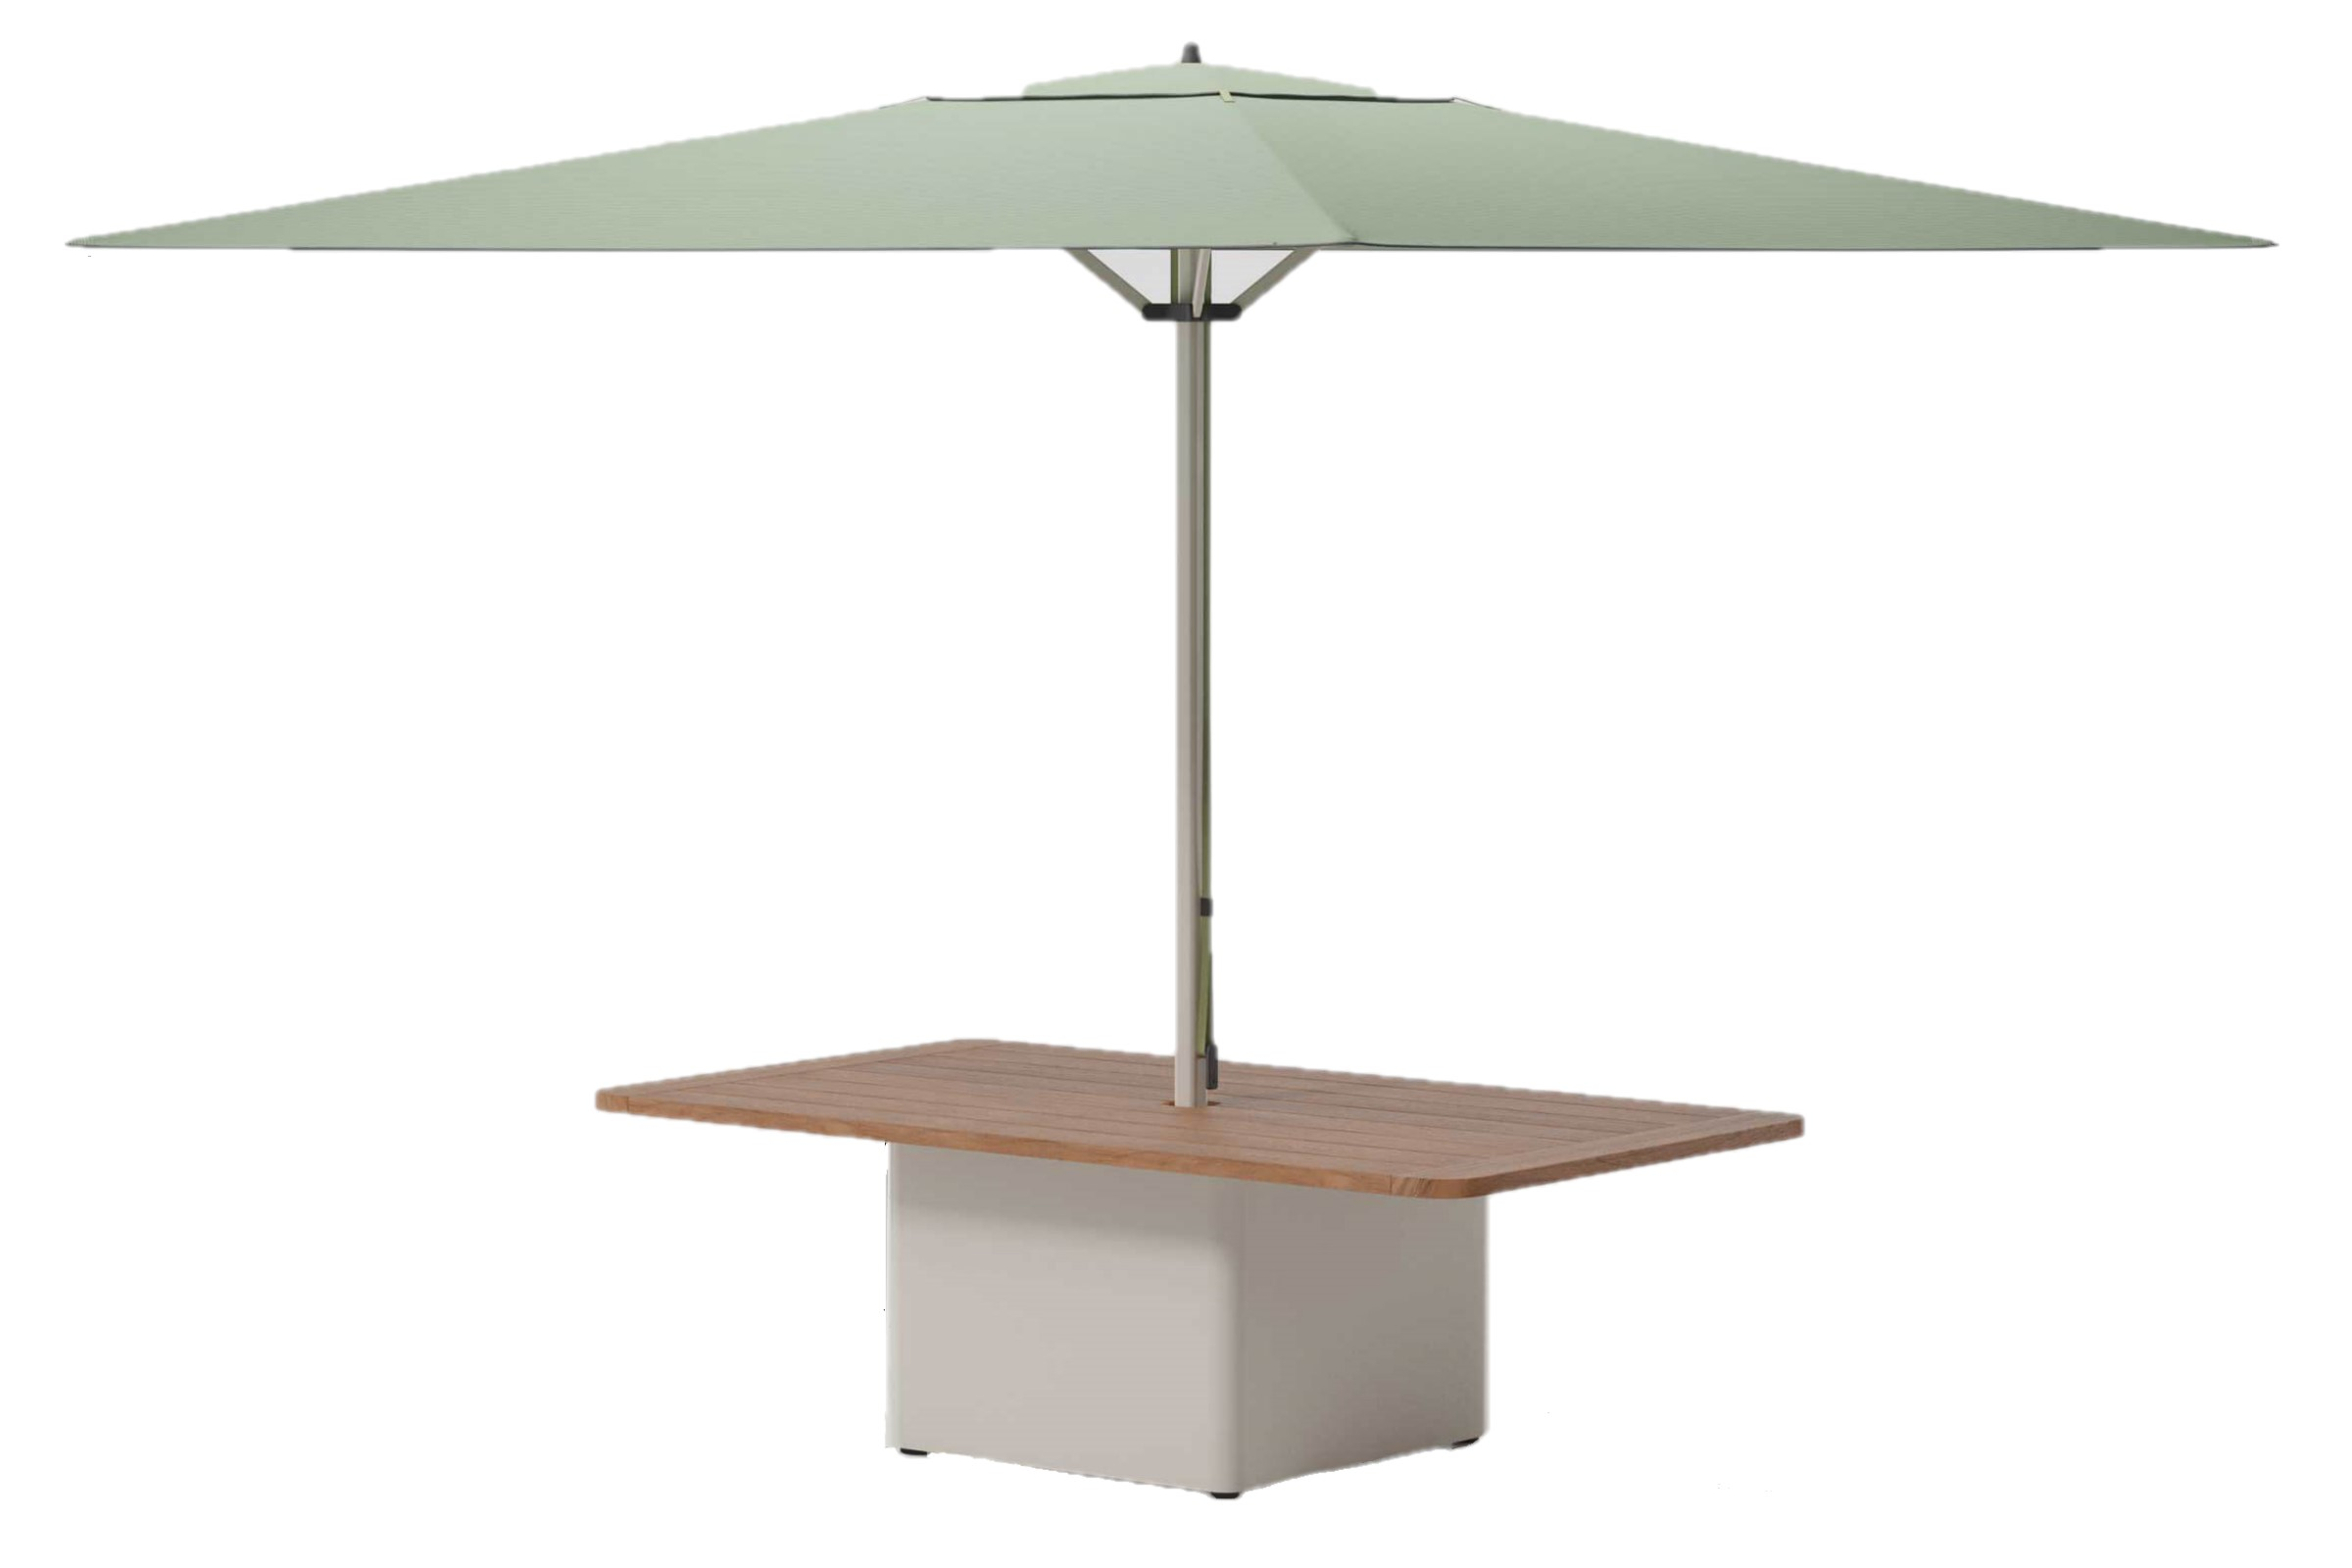 Product Image Meteo Steel Centre Table Base Parasol